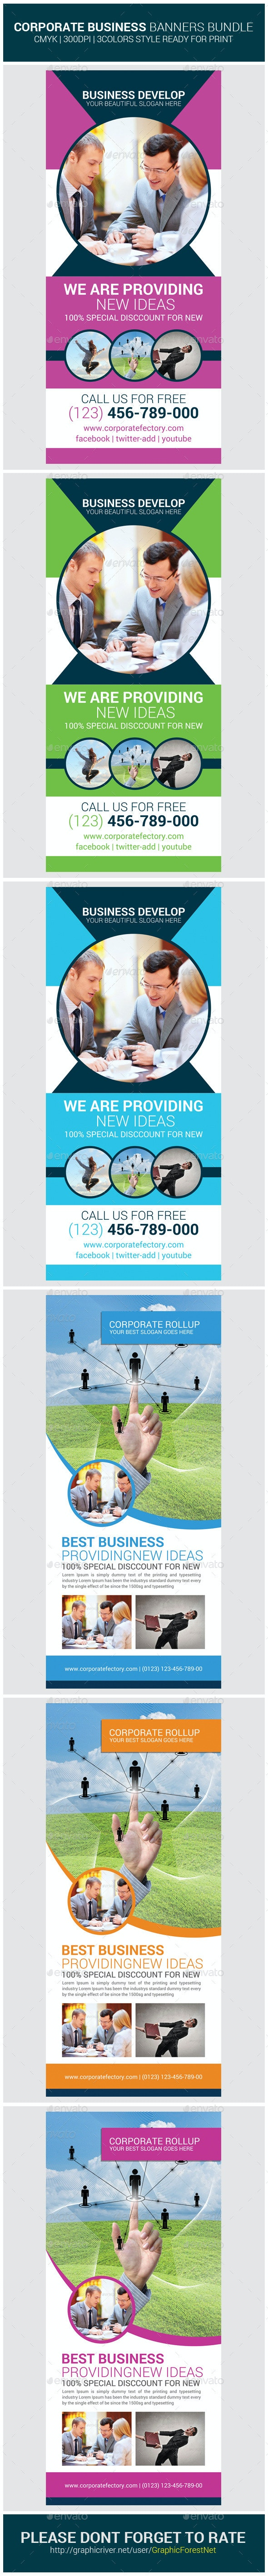 Corporate Business Rollup Banners Bundle - Corporate Flyers